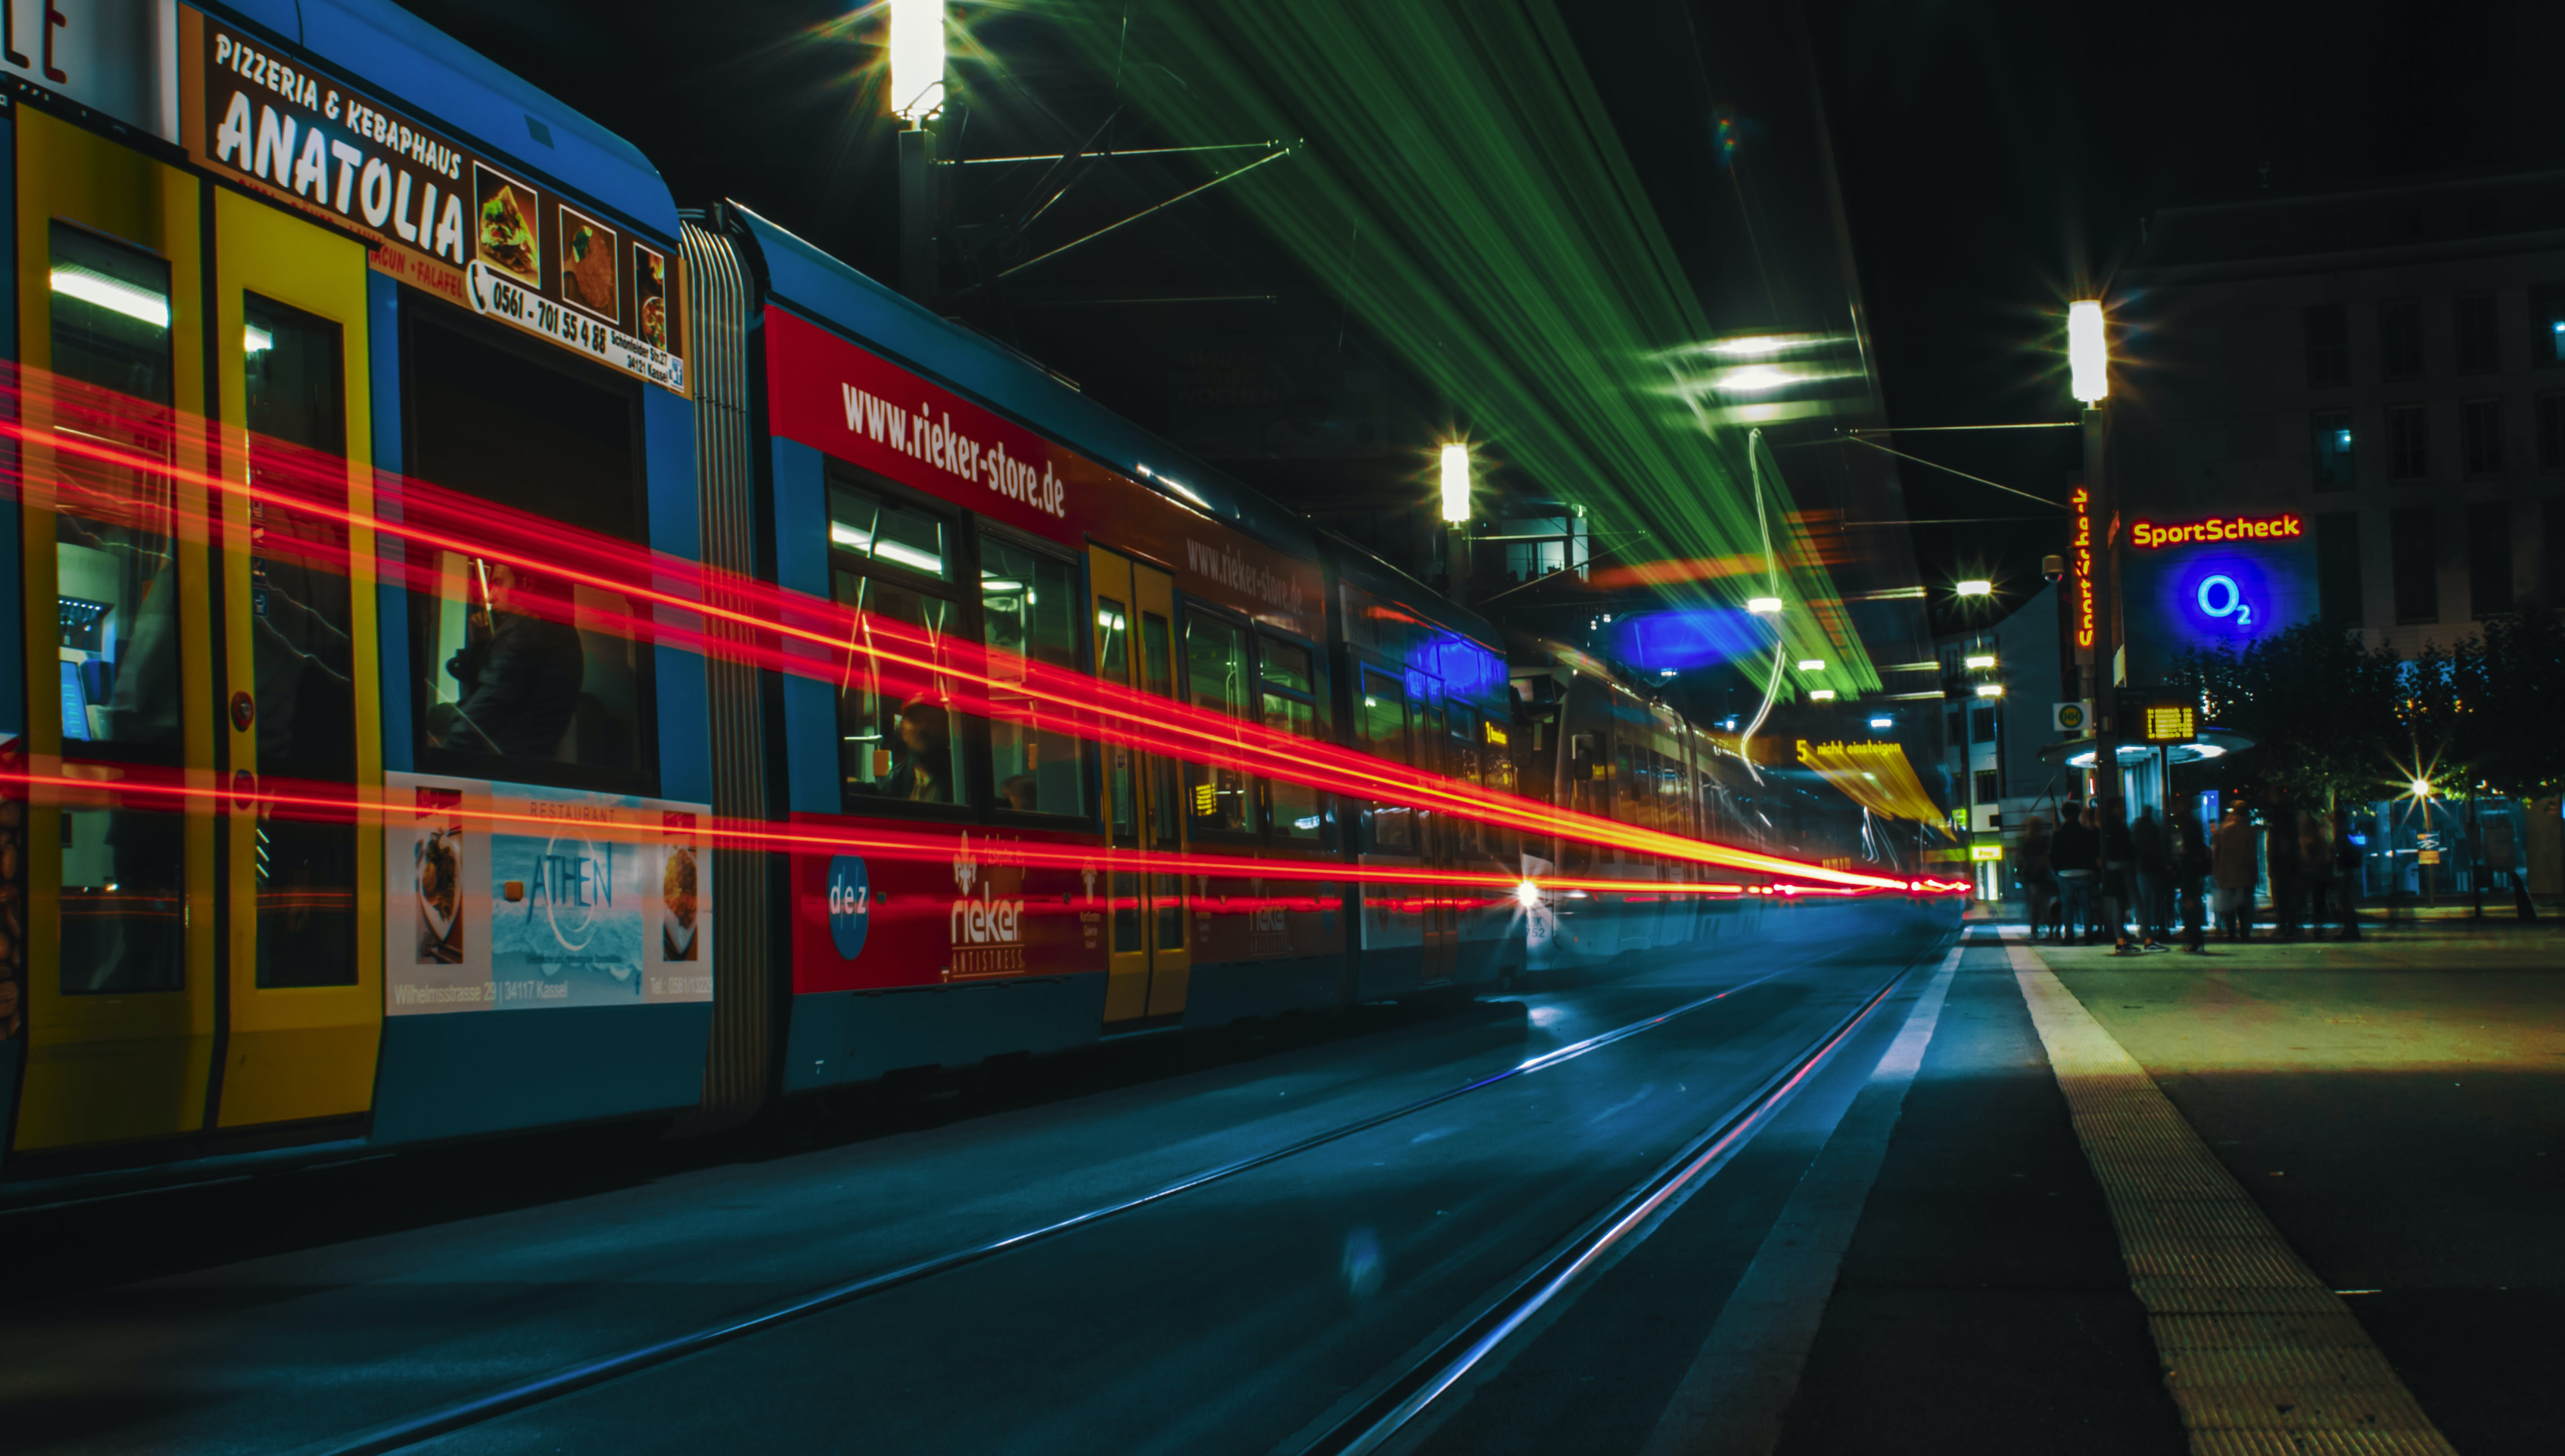 Time-Lapse Photography of Tram During Nighttime